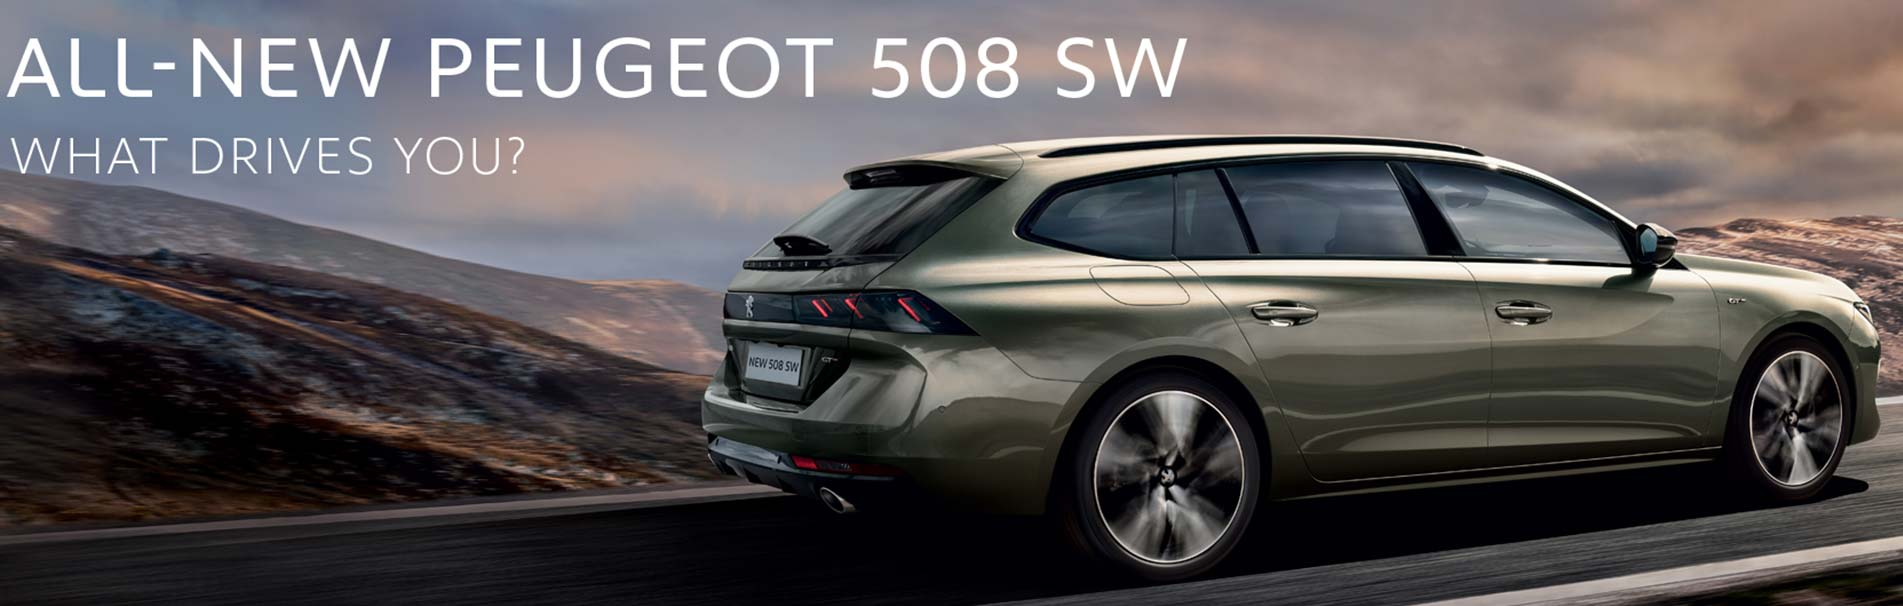 new-peugeot-508-sw-estate-with-night-vision-laucnched-sli